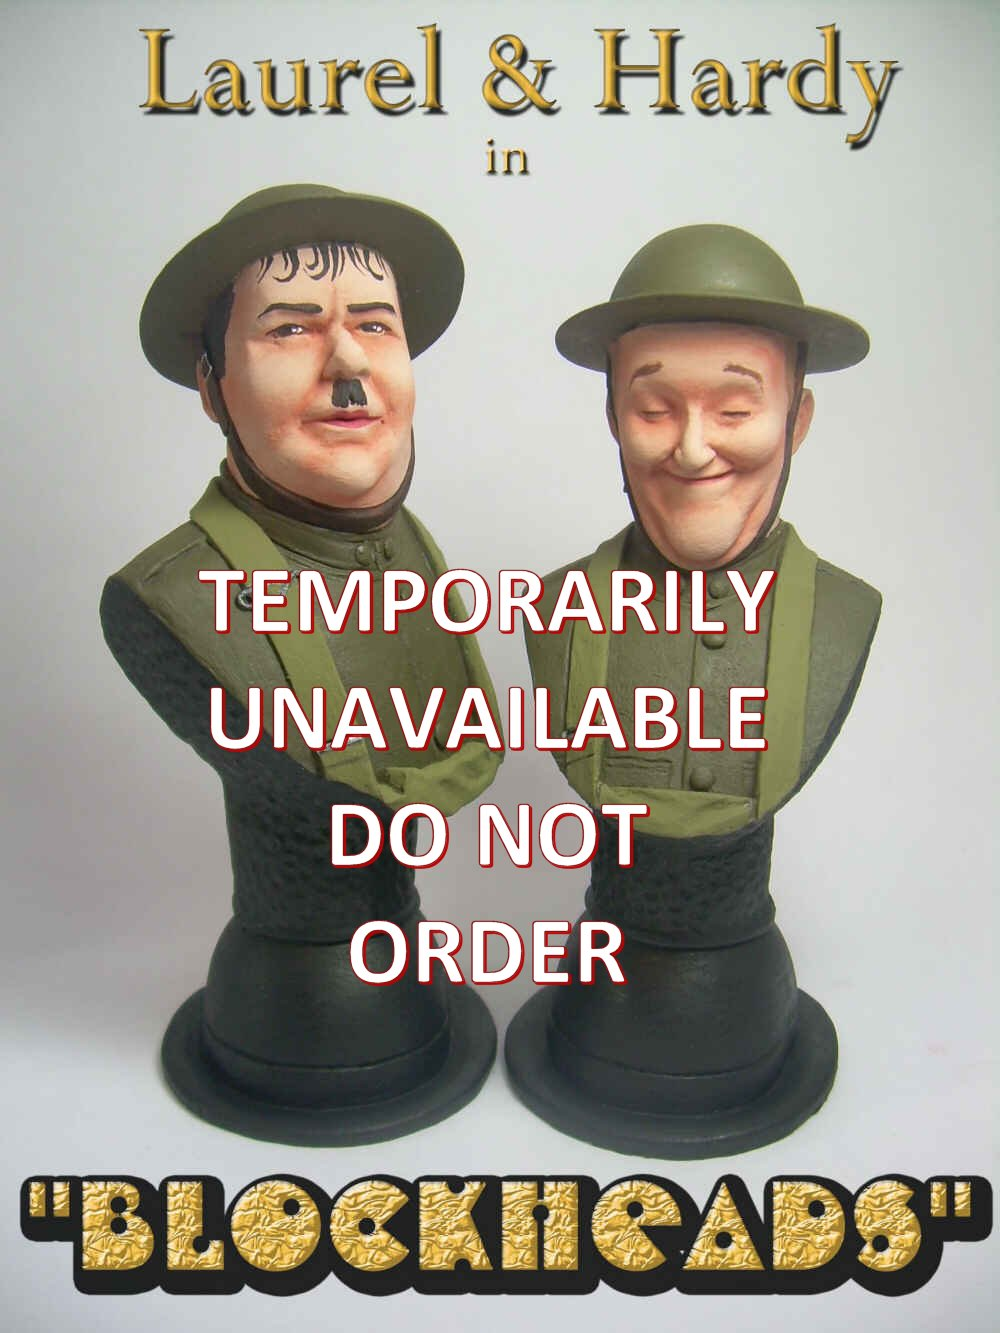 NEW Laurel and Hardy Blockheads Busts